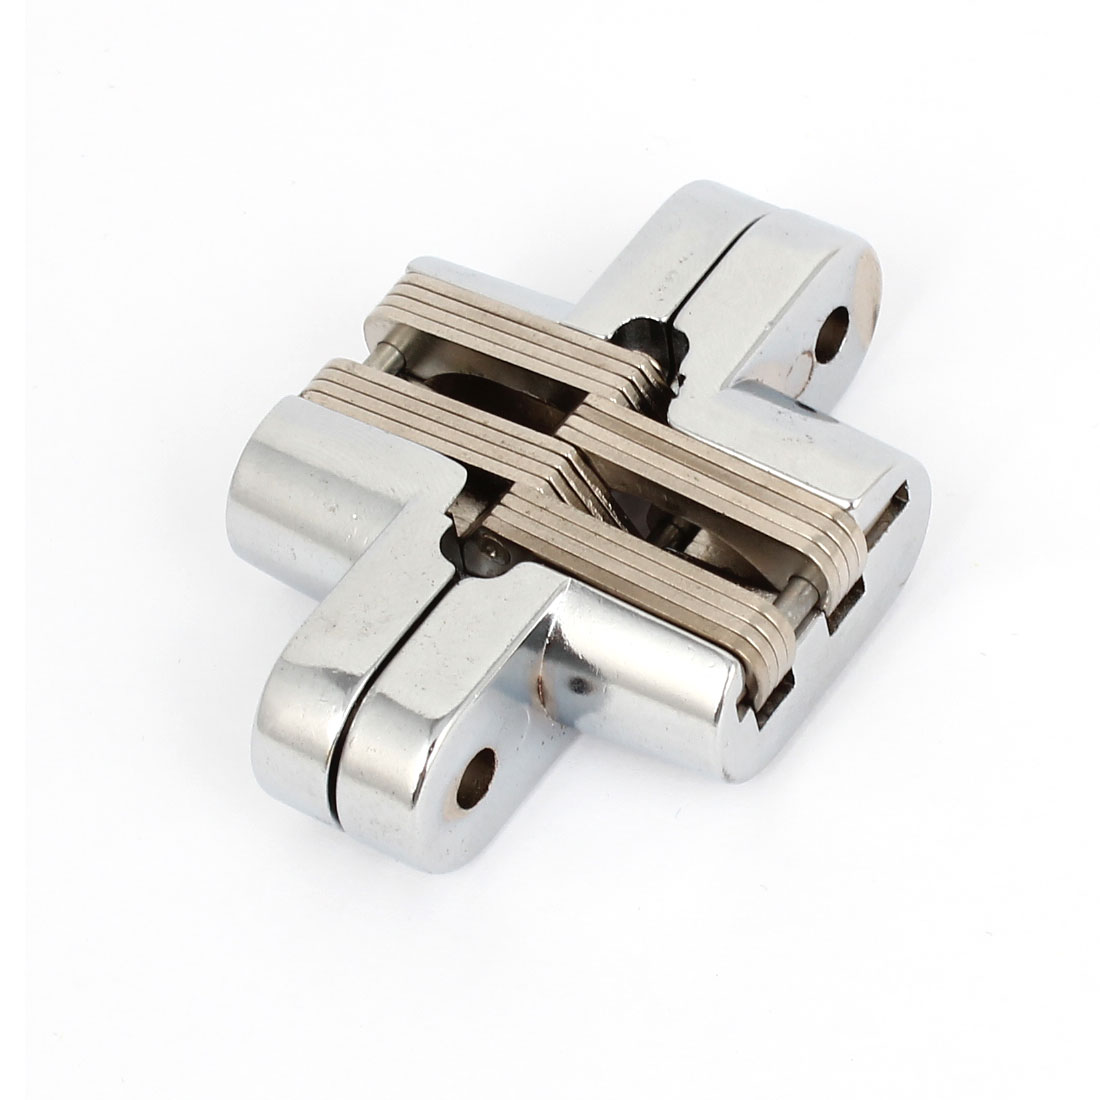 Silver Tone Metal Cross Hinge 62mm Length for Folded Door Cabinet